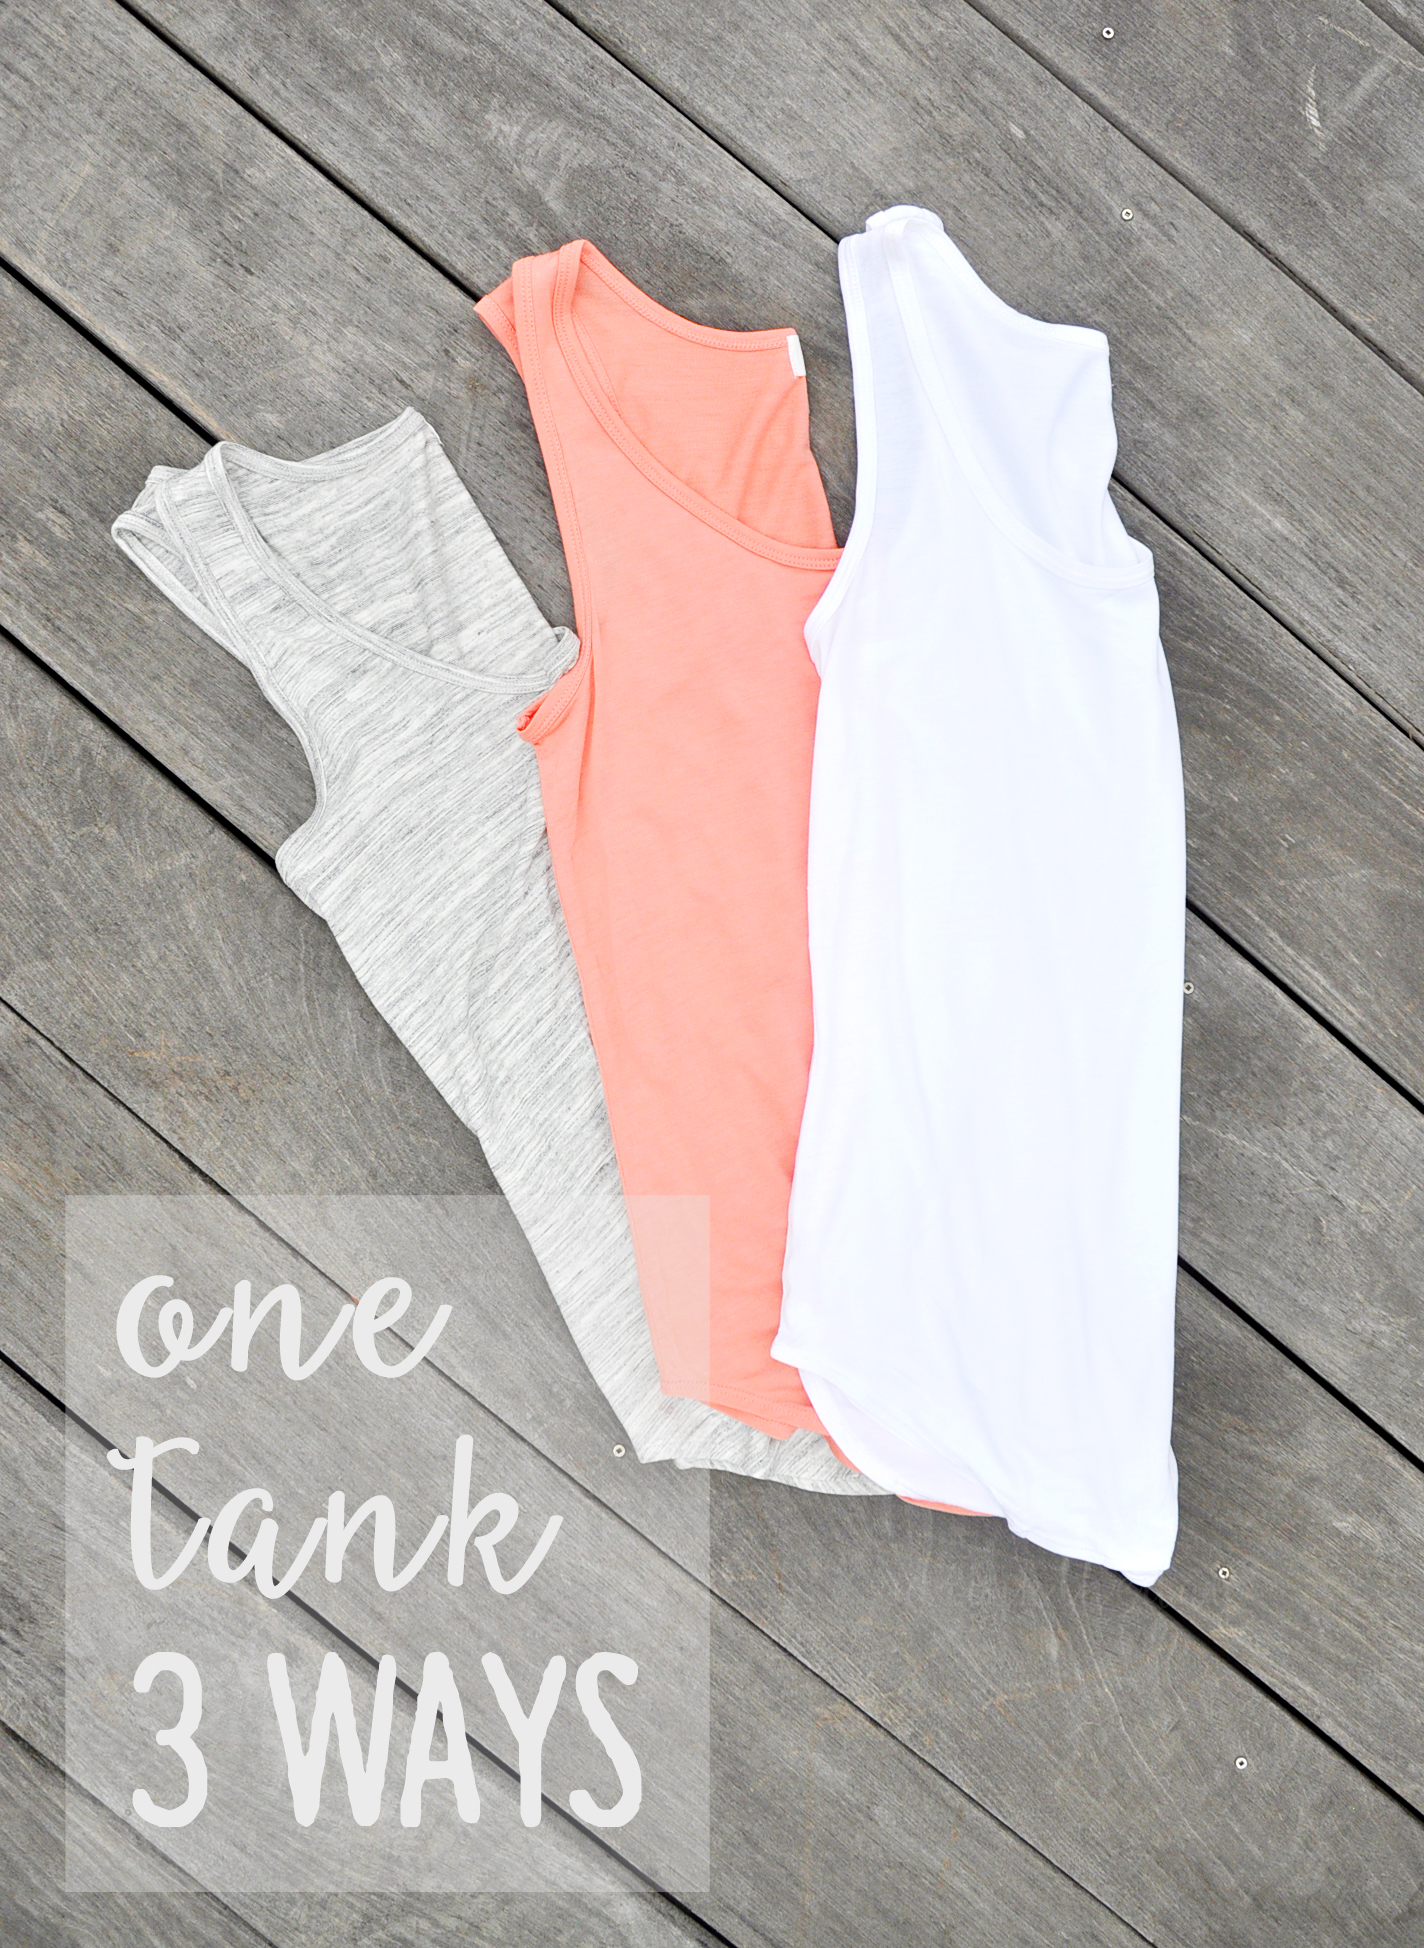 1 Tank, 3 Ways | Drink the Day